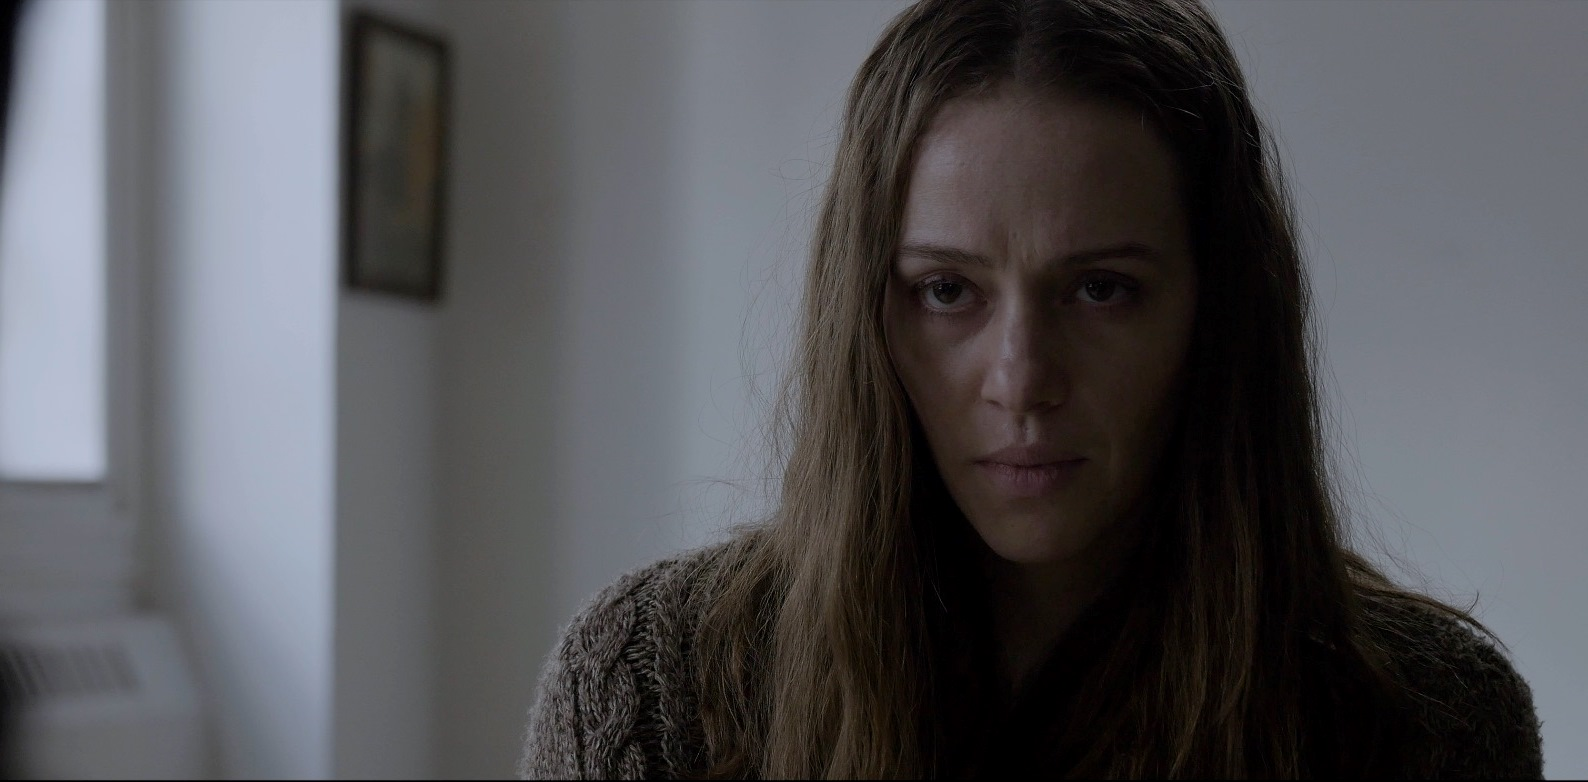 Asylum inmate Sybil (April Billingsley) in The Dark Red (2019)